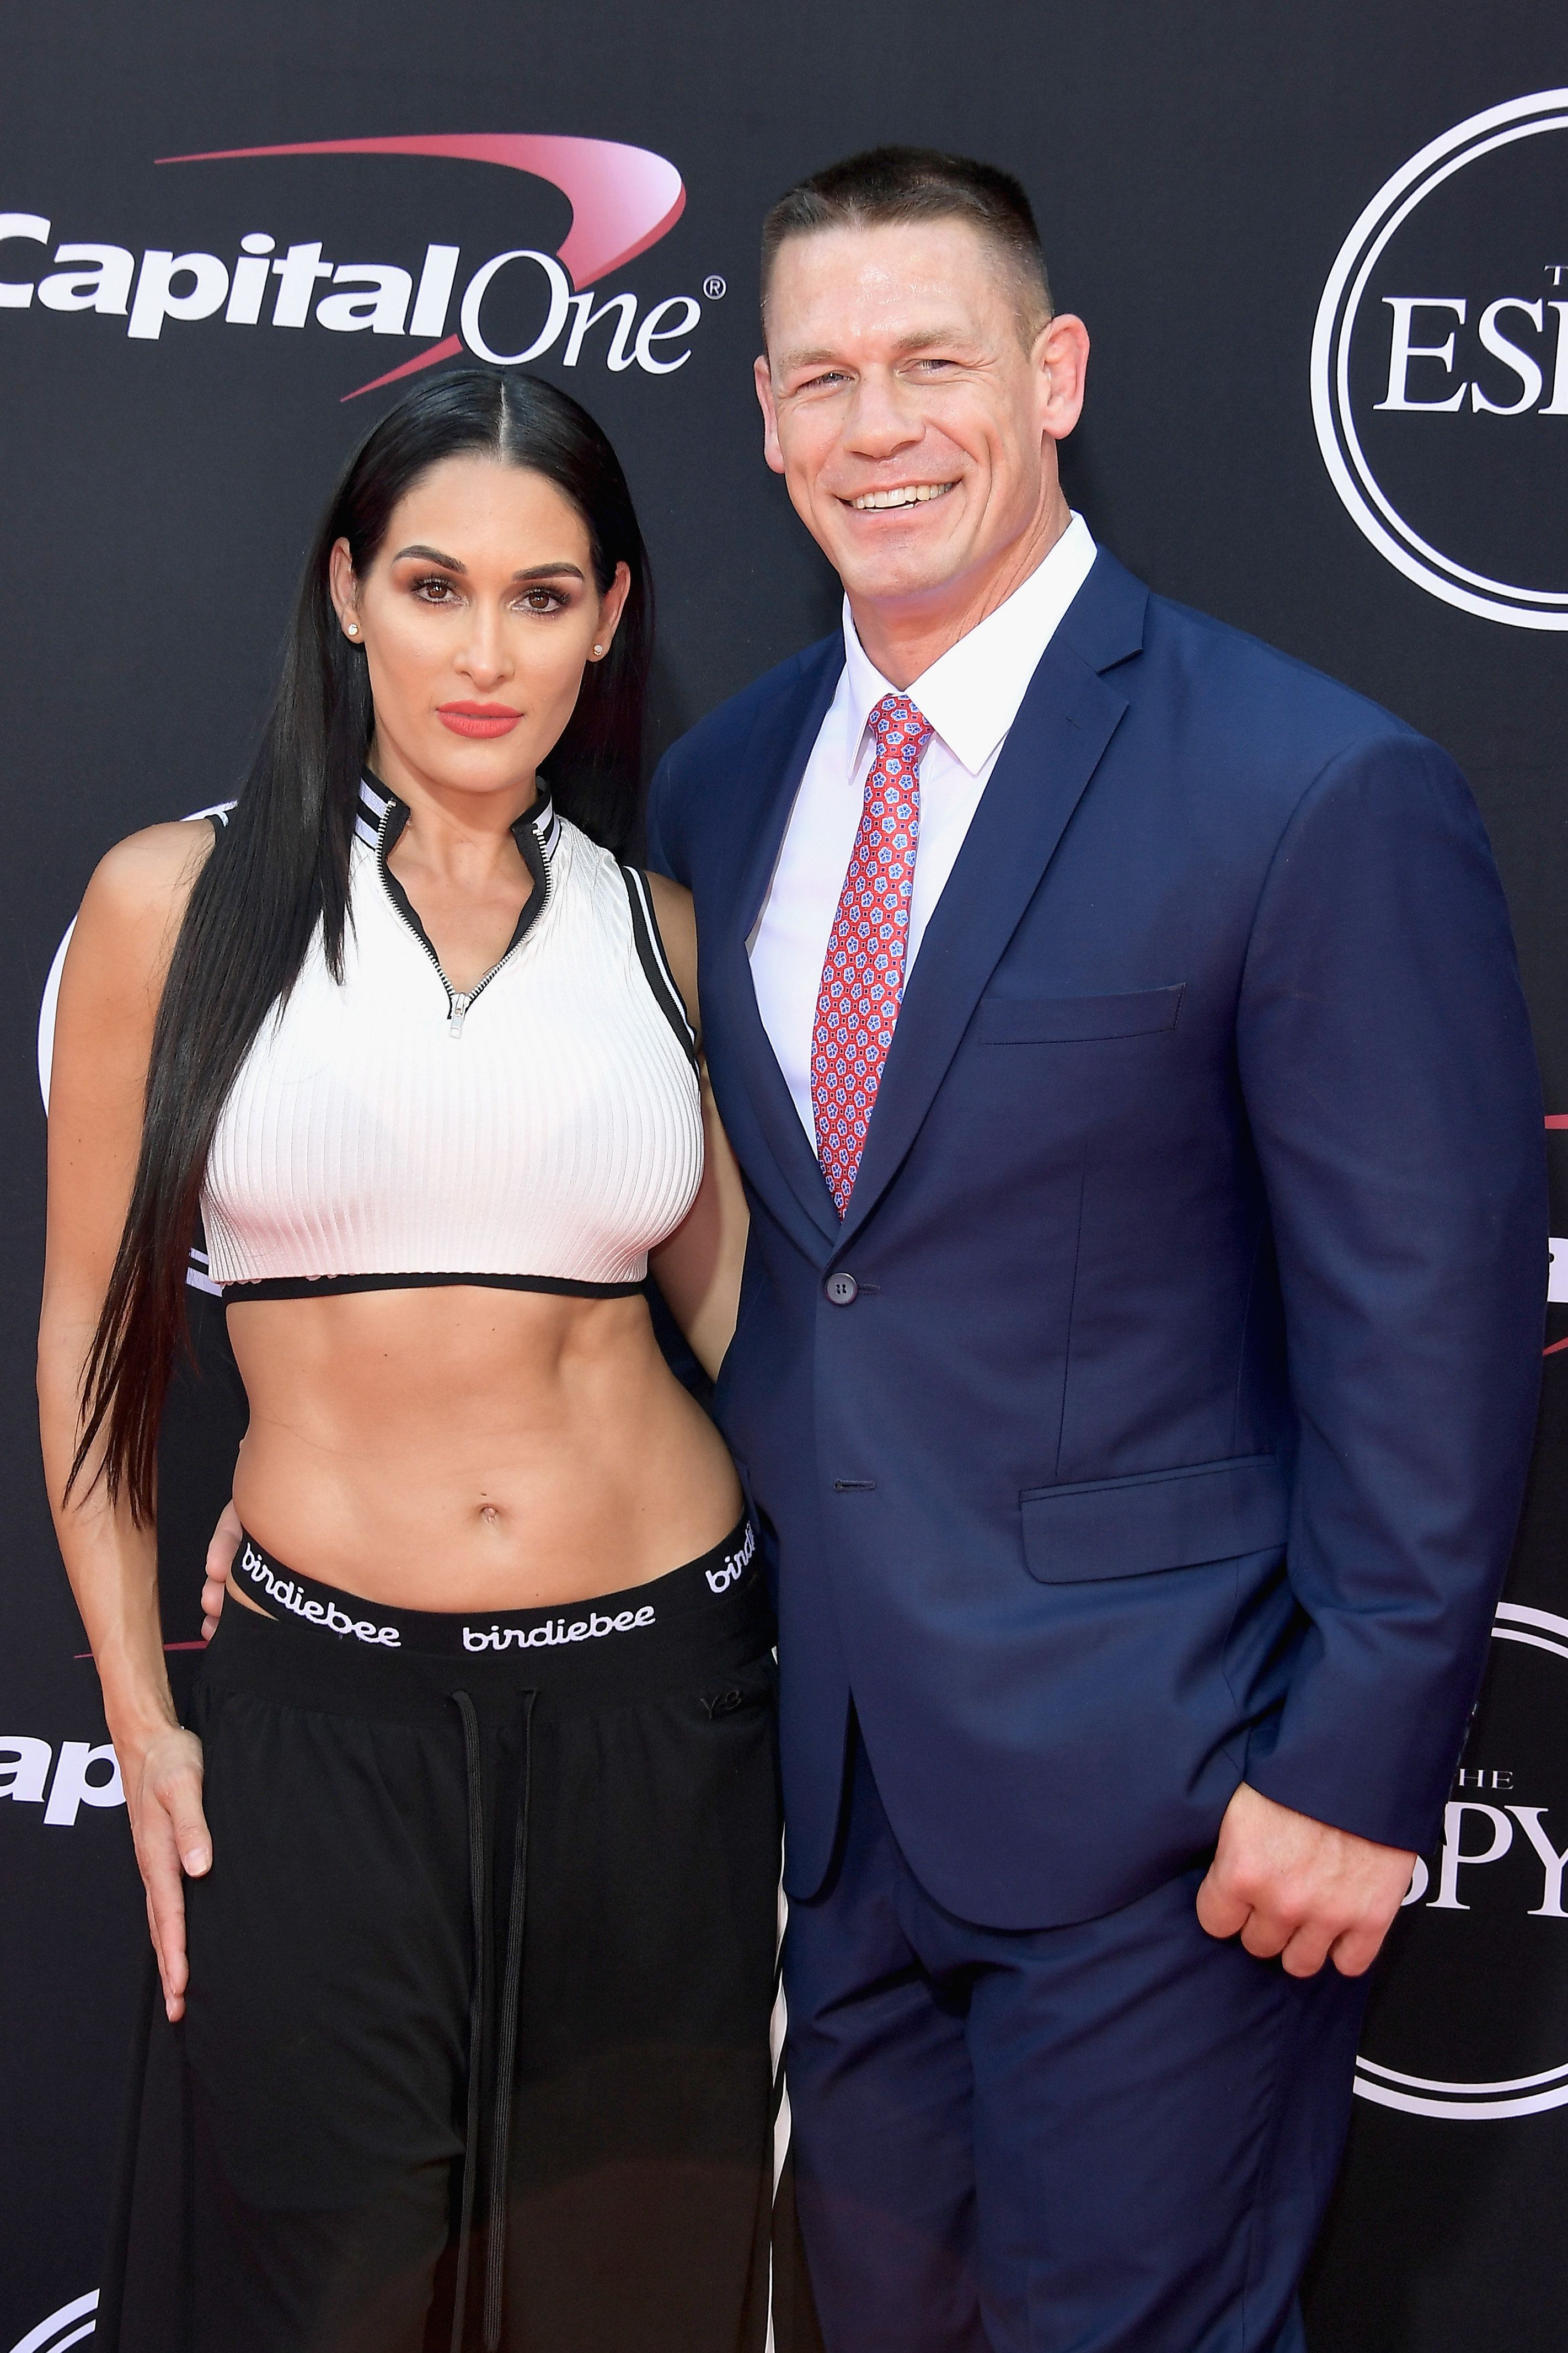 LOS ANGELES, CA - JULY 12:  Wrestler Nikki Bella and actor/wrestler John Cena attend The 2017 ESPYS at Microsoft Theater on July 12, 2017 in Los Angeles, California.  (Photo by Matt Winkelmeyer/Getty Images)